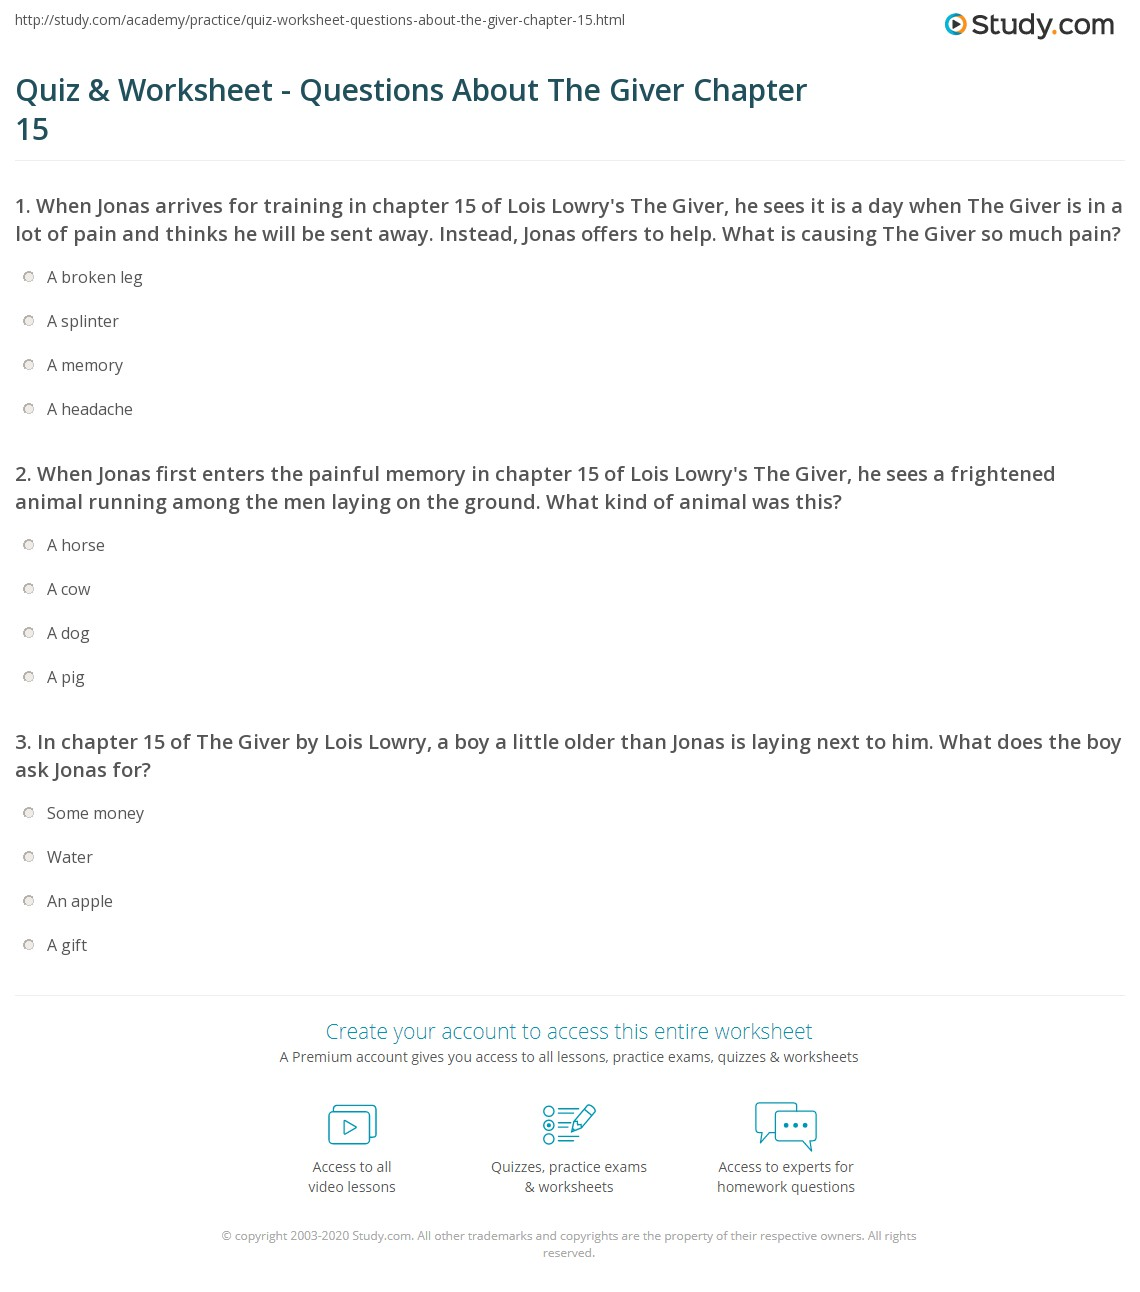 quiz worksheet questions about the giver chapter com when jonas first enters the painful memory in chapter 15 of lois lowry s the giver he sees a frightened animal running among the men laying on the ground